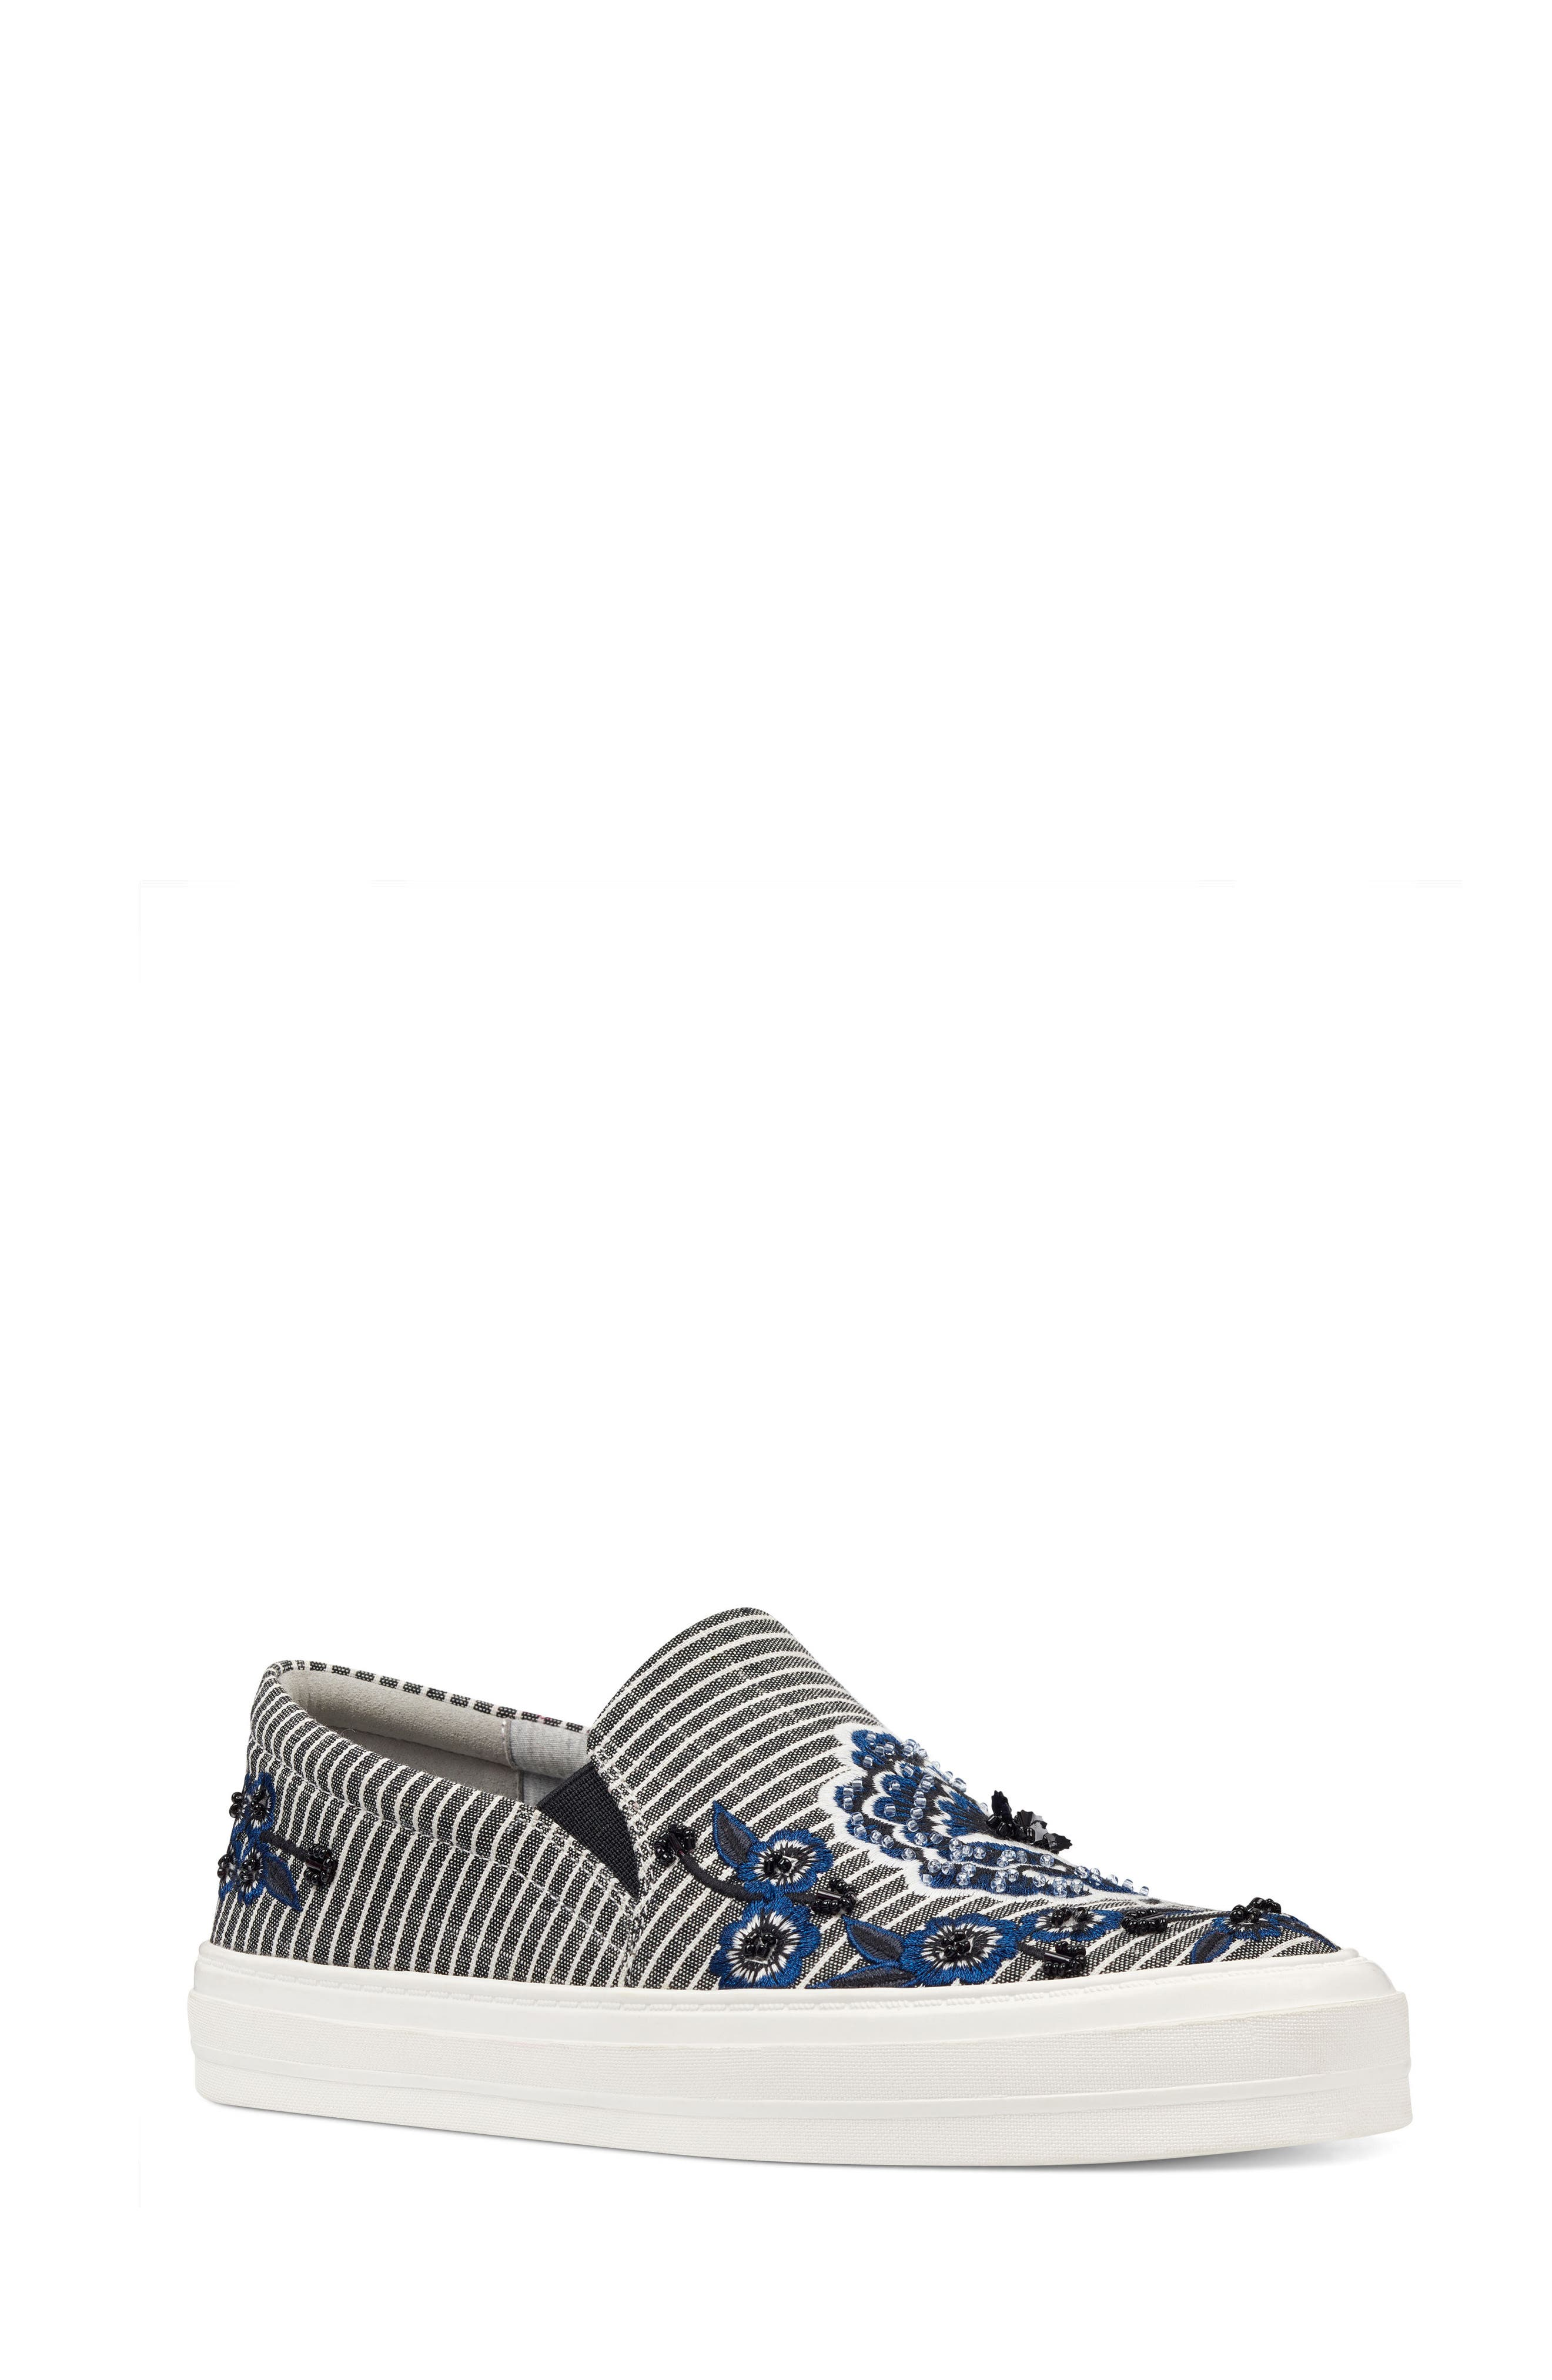 Onyeka Embroidered Slip-On Sneaker,                             Main thumbnail 1, color,                             001